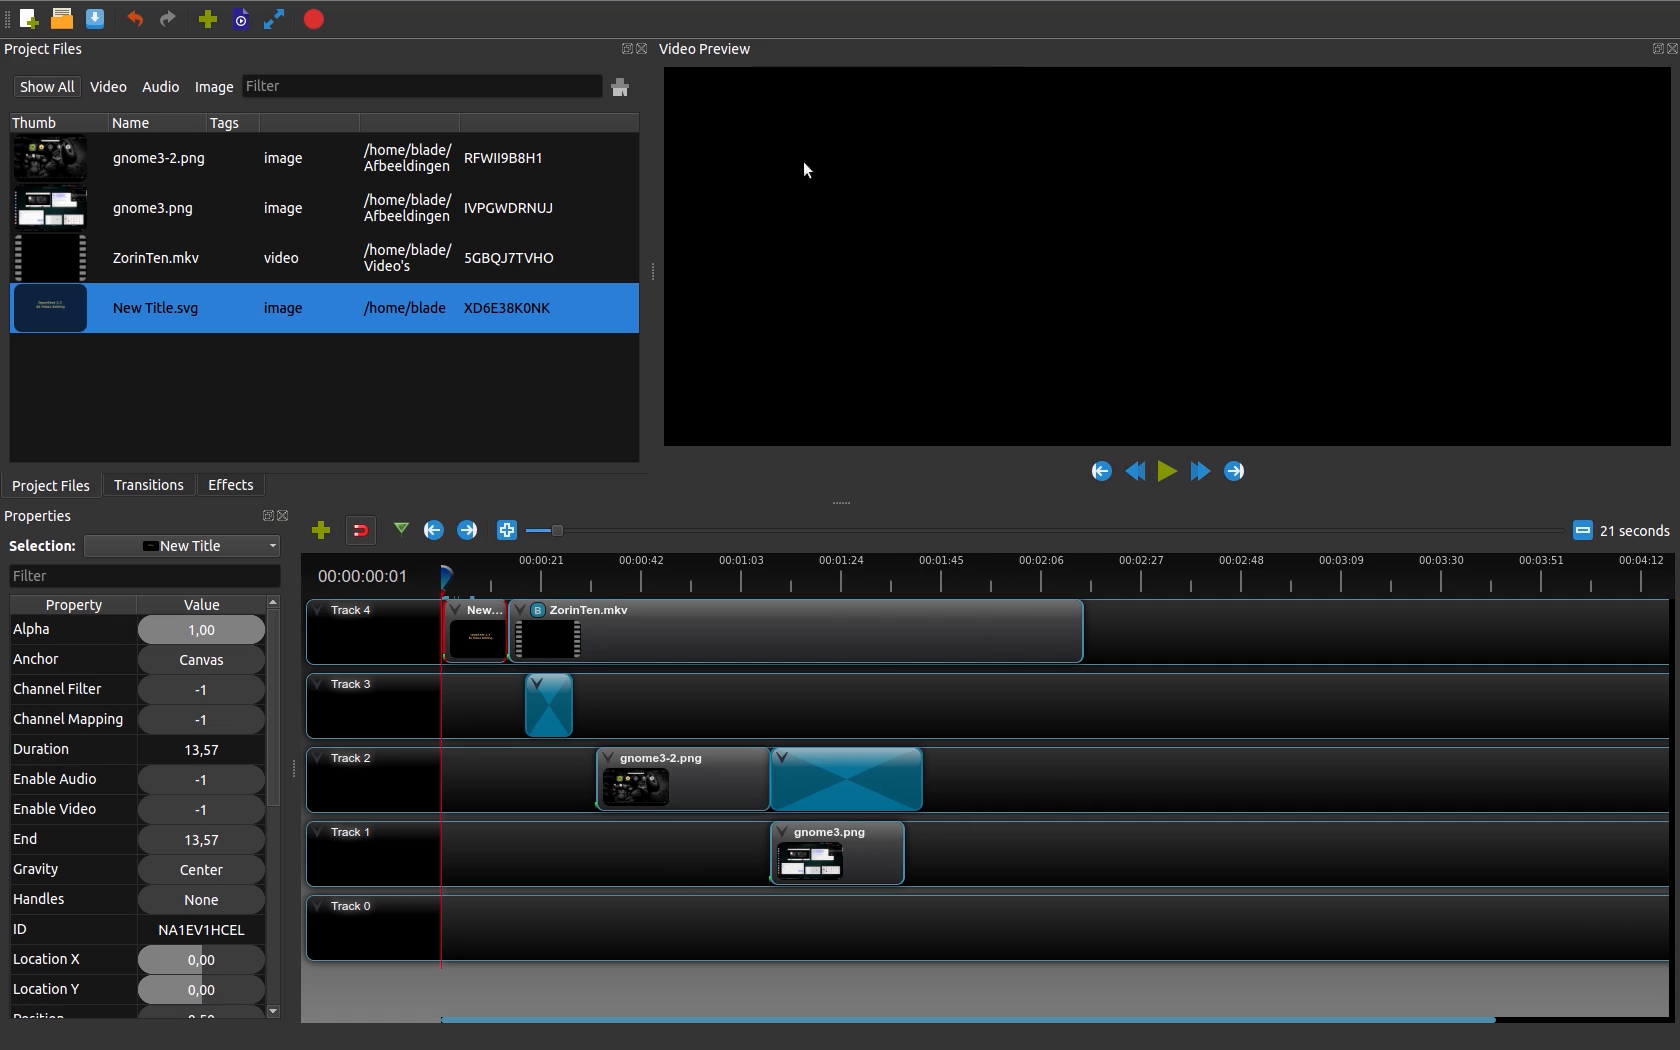 OpenShot 2.2 Released with 4K Video Editing!